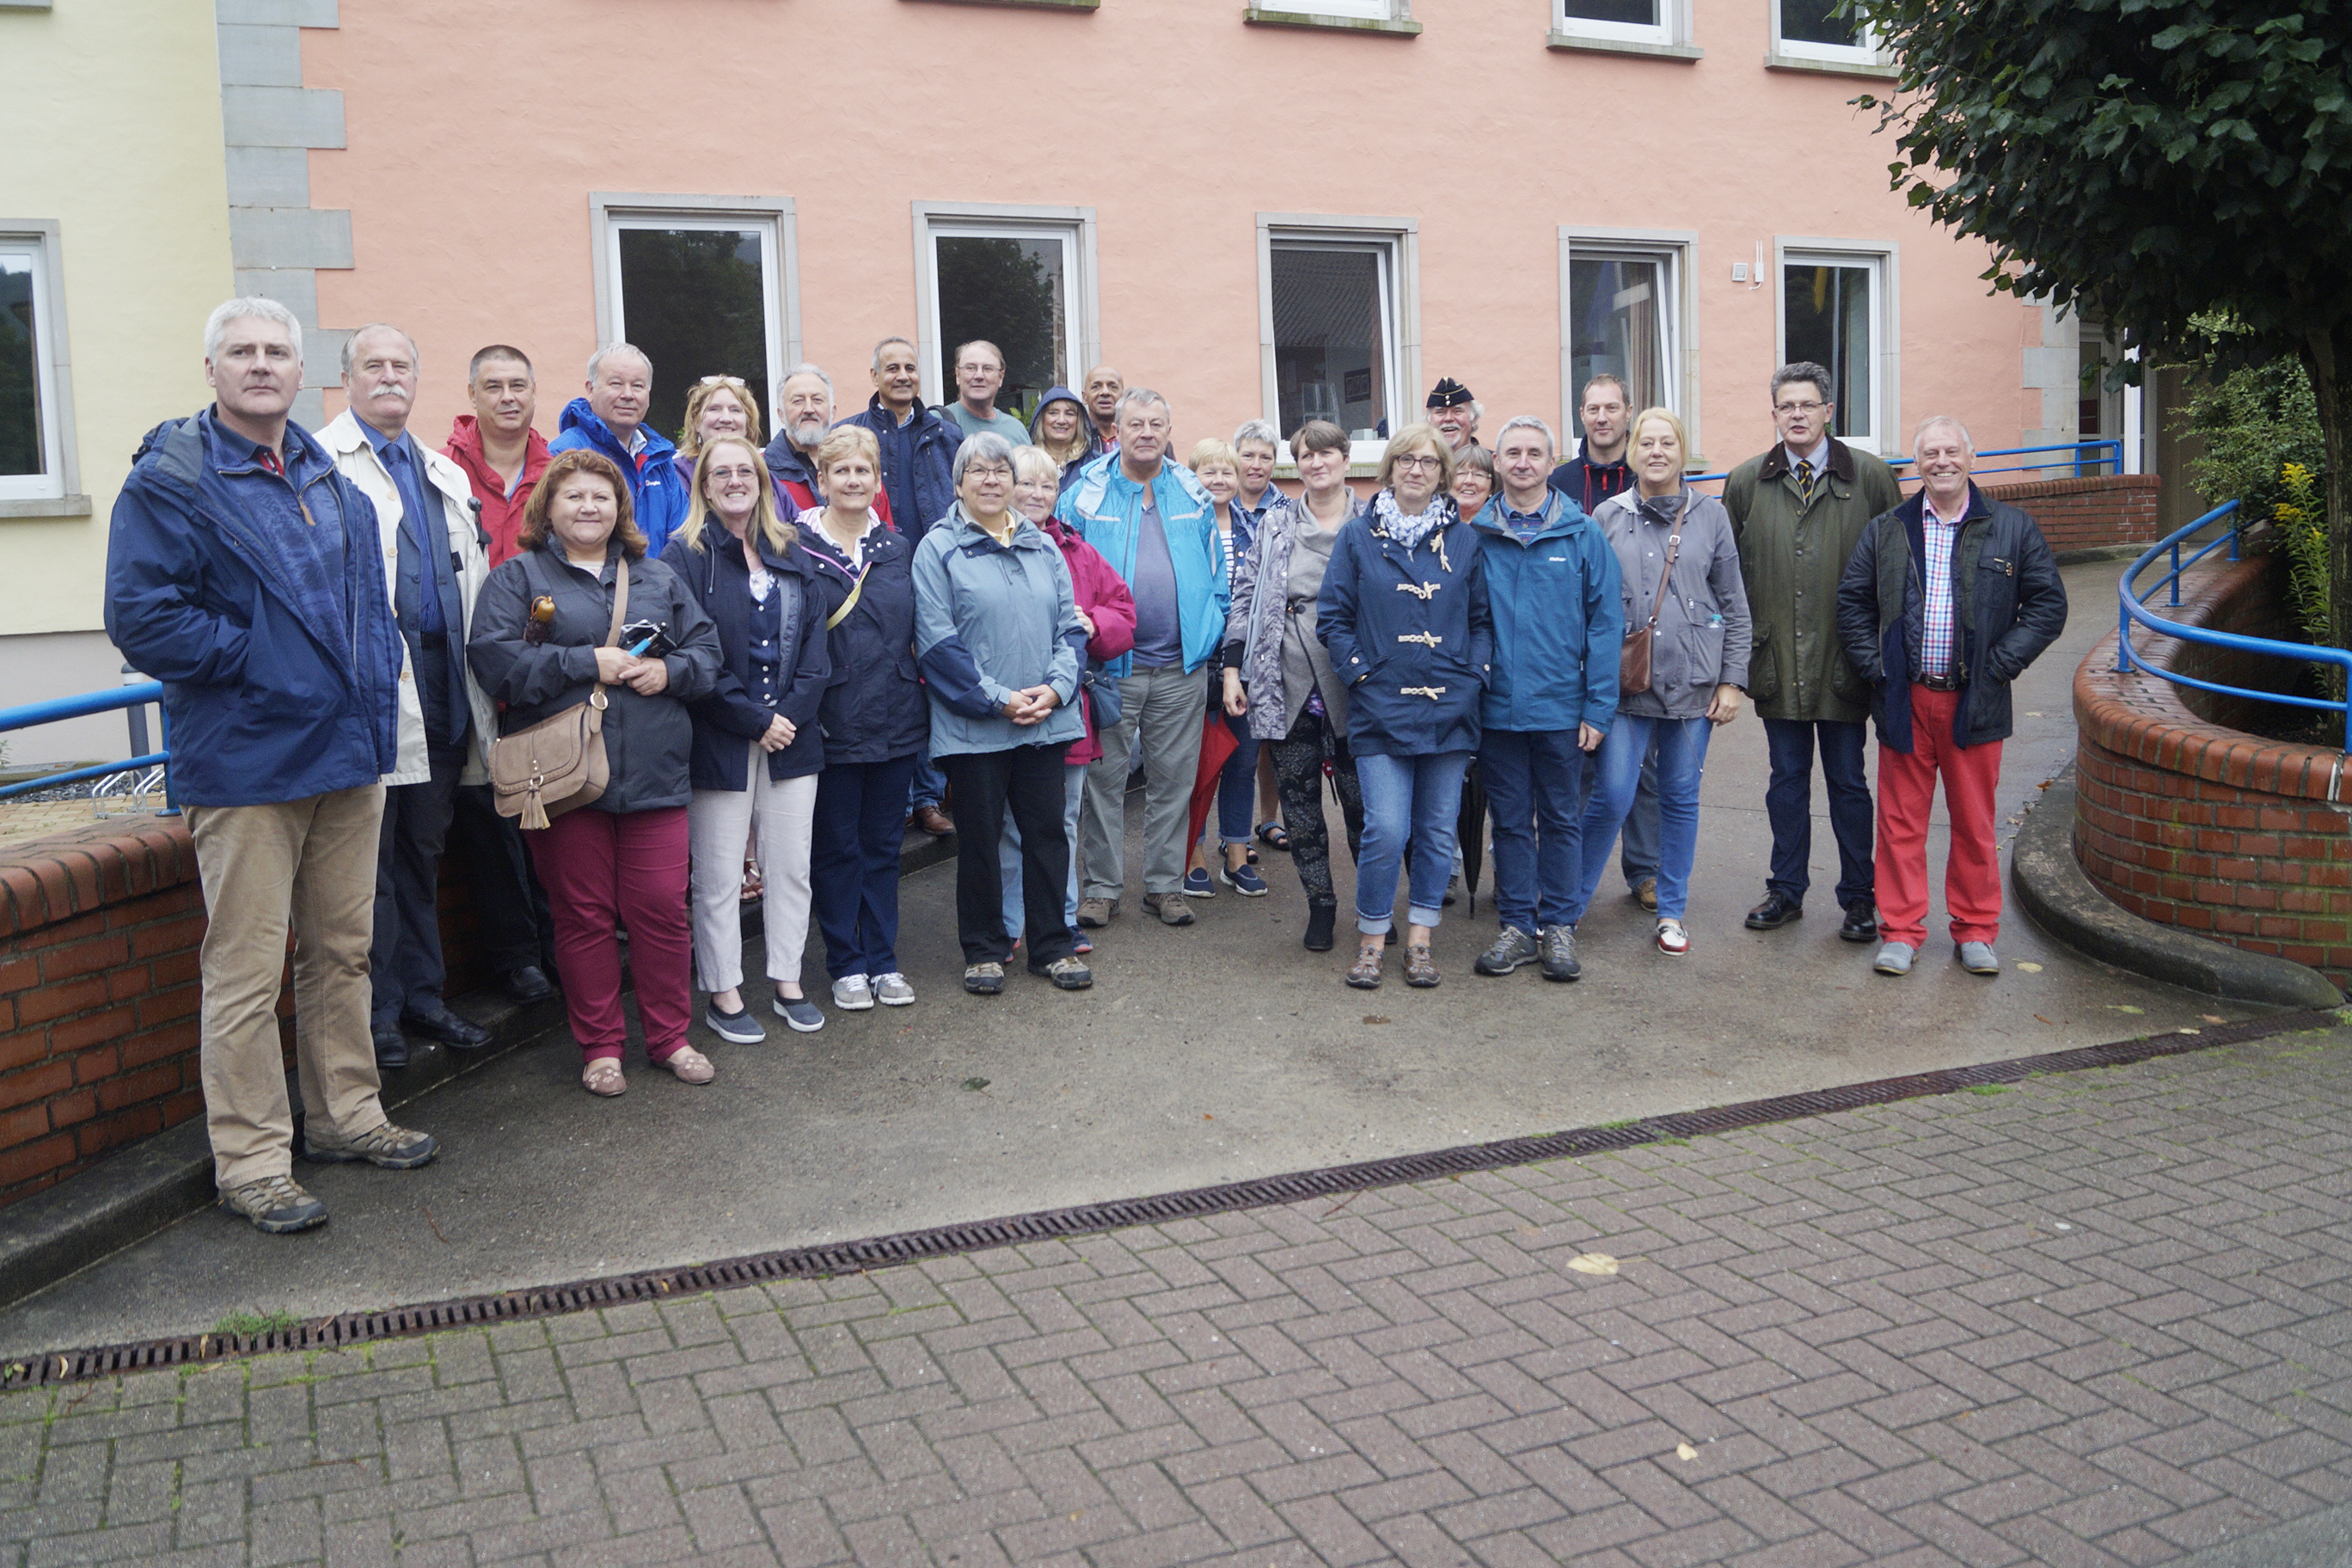 Time to reminisce: The group was taken on a tour of the former BMH Rinteln, guided by Michael von Müller, second right, from the charity Lebenshilfe Rinteln eV which now occupies the premises